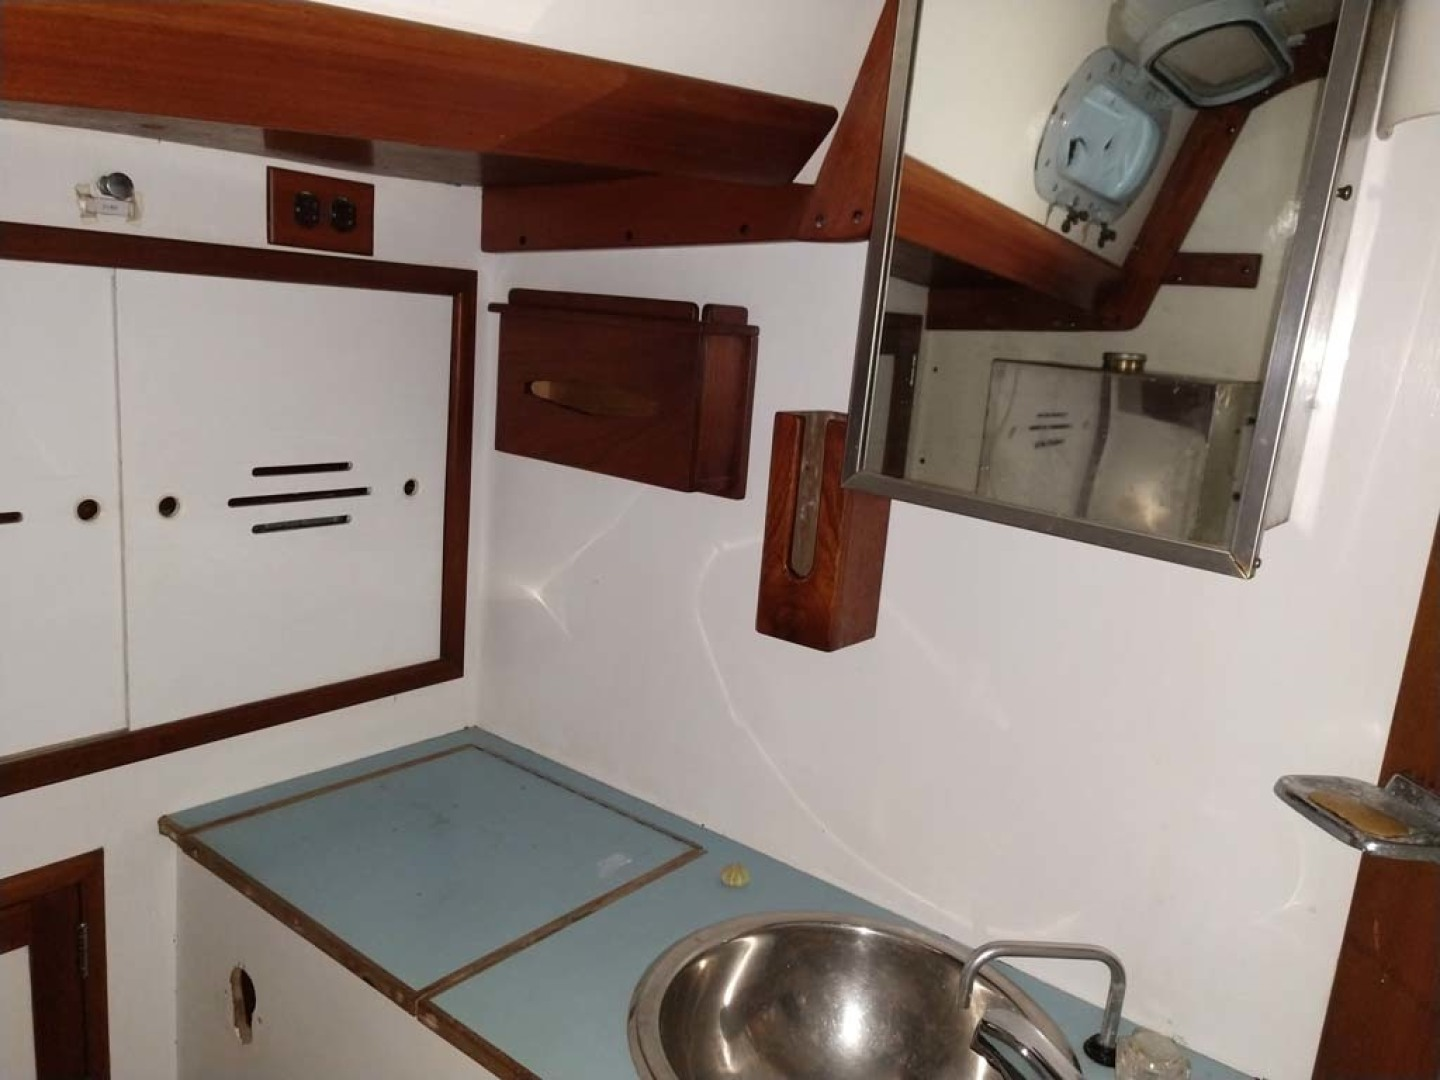 Hinckley-Bermuda 40 Yawl 1970-Rhodora South Berwick-Maine-United States-Head Vanity And Sink-1585556 | Thumbnail